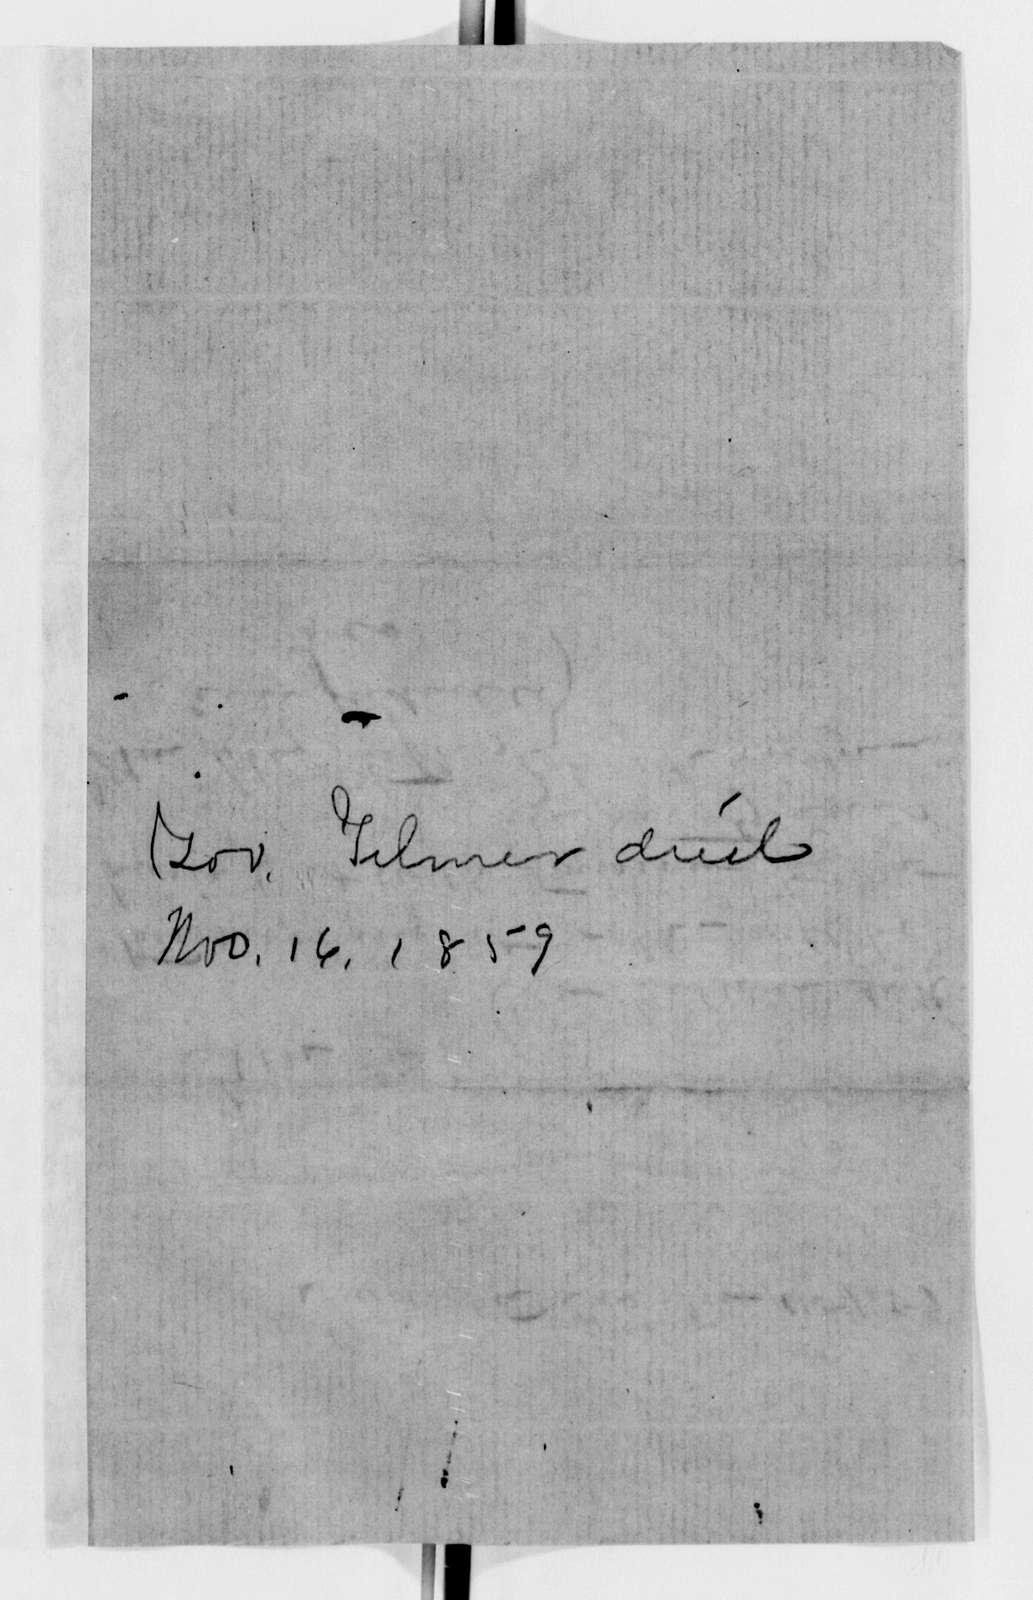 Alexander Hamilton Stephens Papers: General Correspondence, 1784-1886; 1859, Oct. 25-1860, Mar. 4